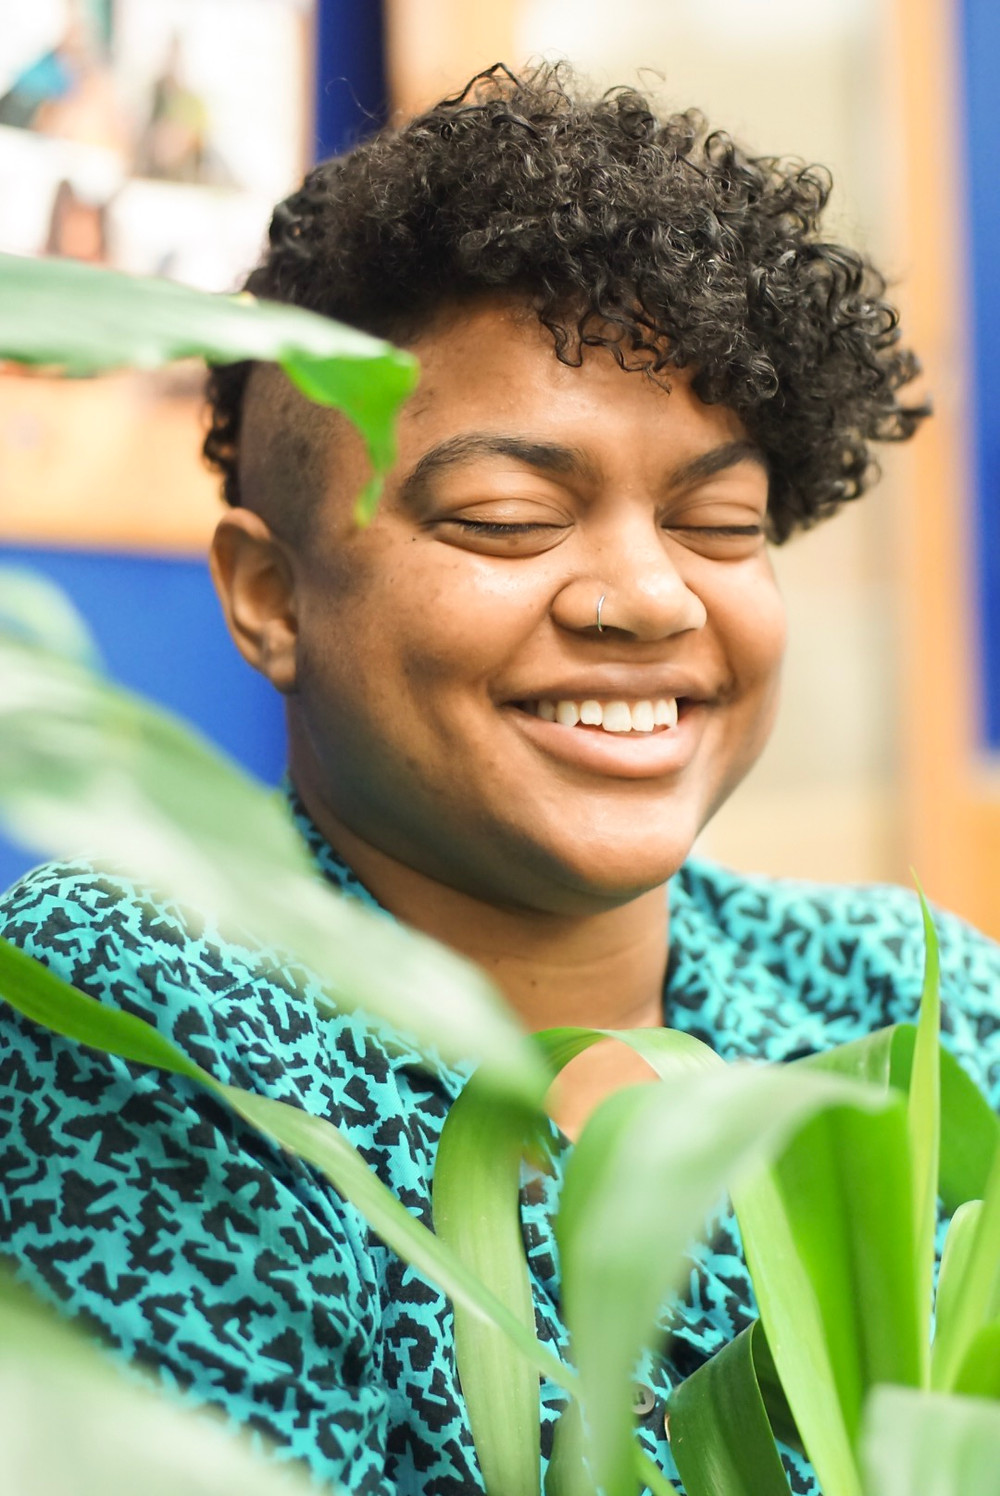 Feature: Briyana D. Clarel, Founder of The Starfruit Project